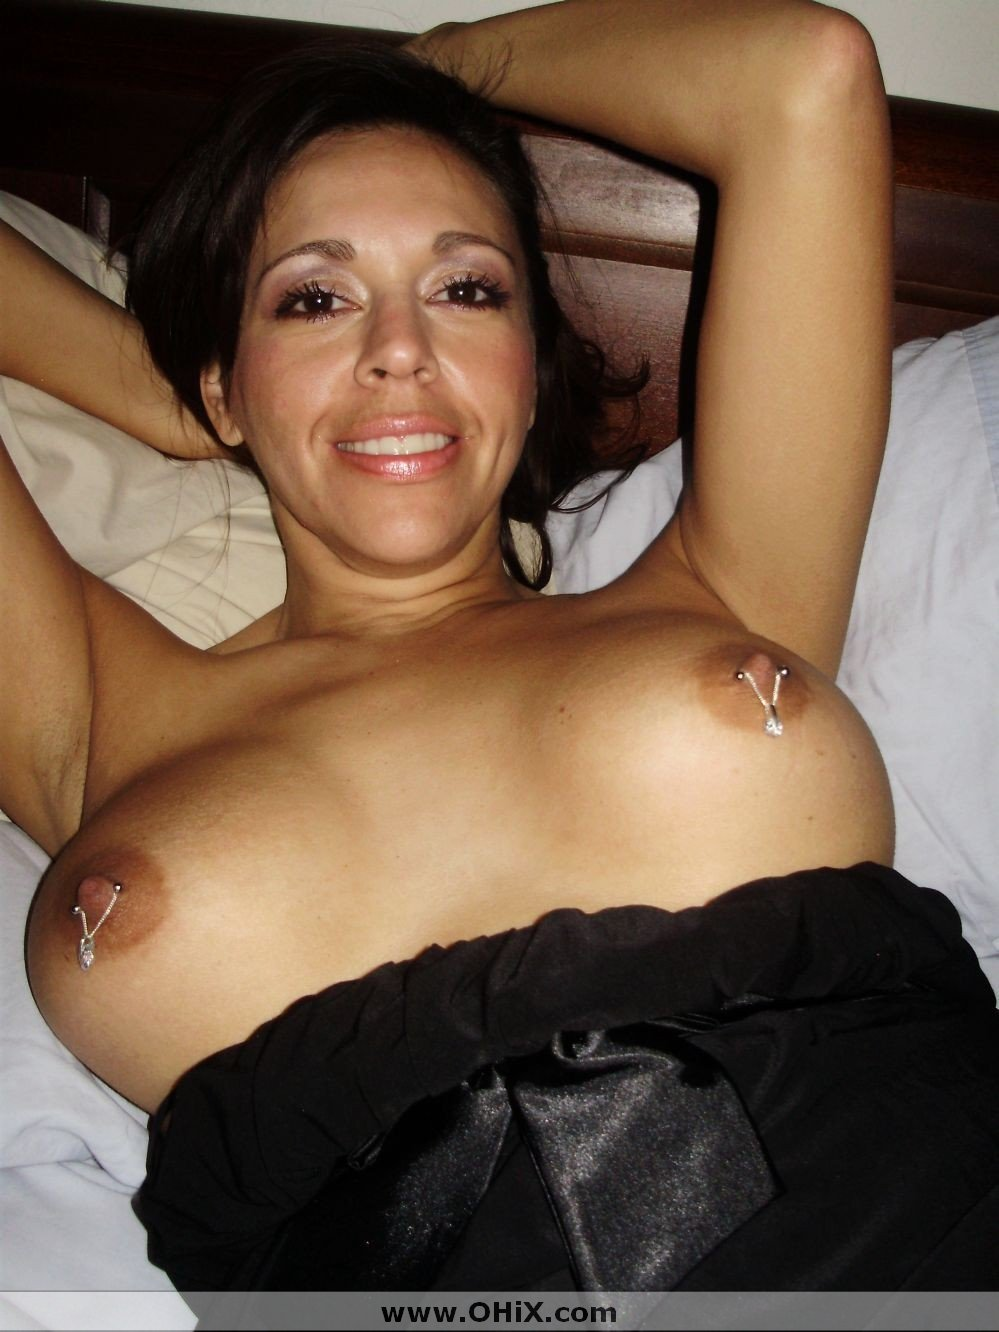 http://static.ohix.com/photos/Mature-brune-bronzee-3/17.jpg